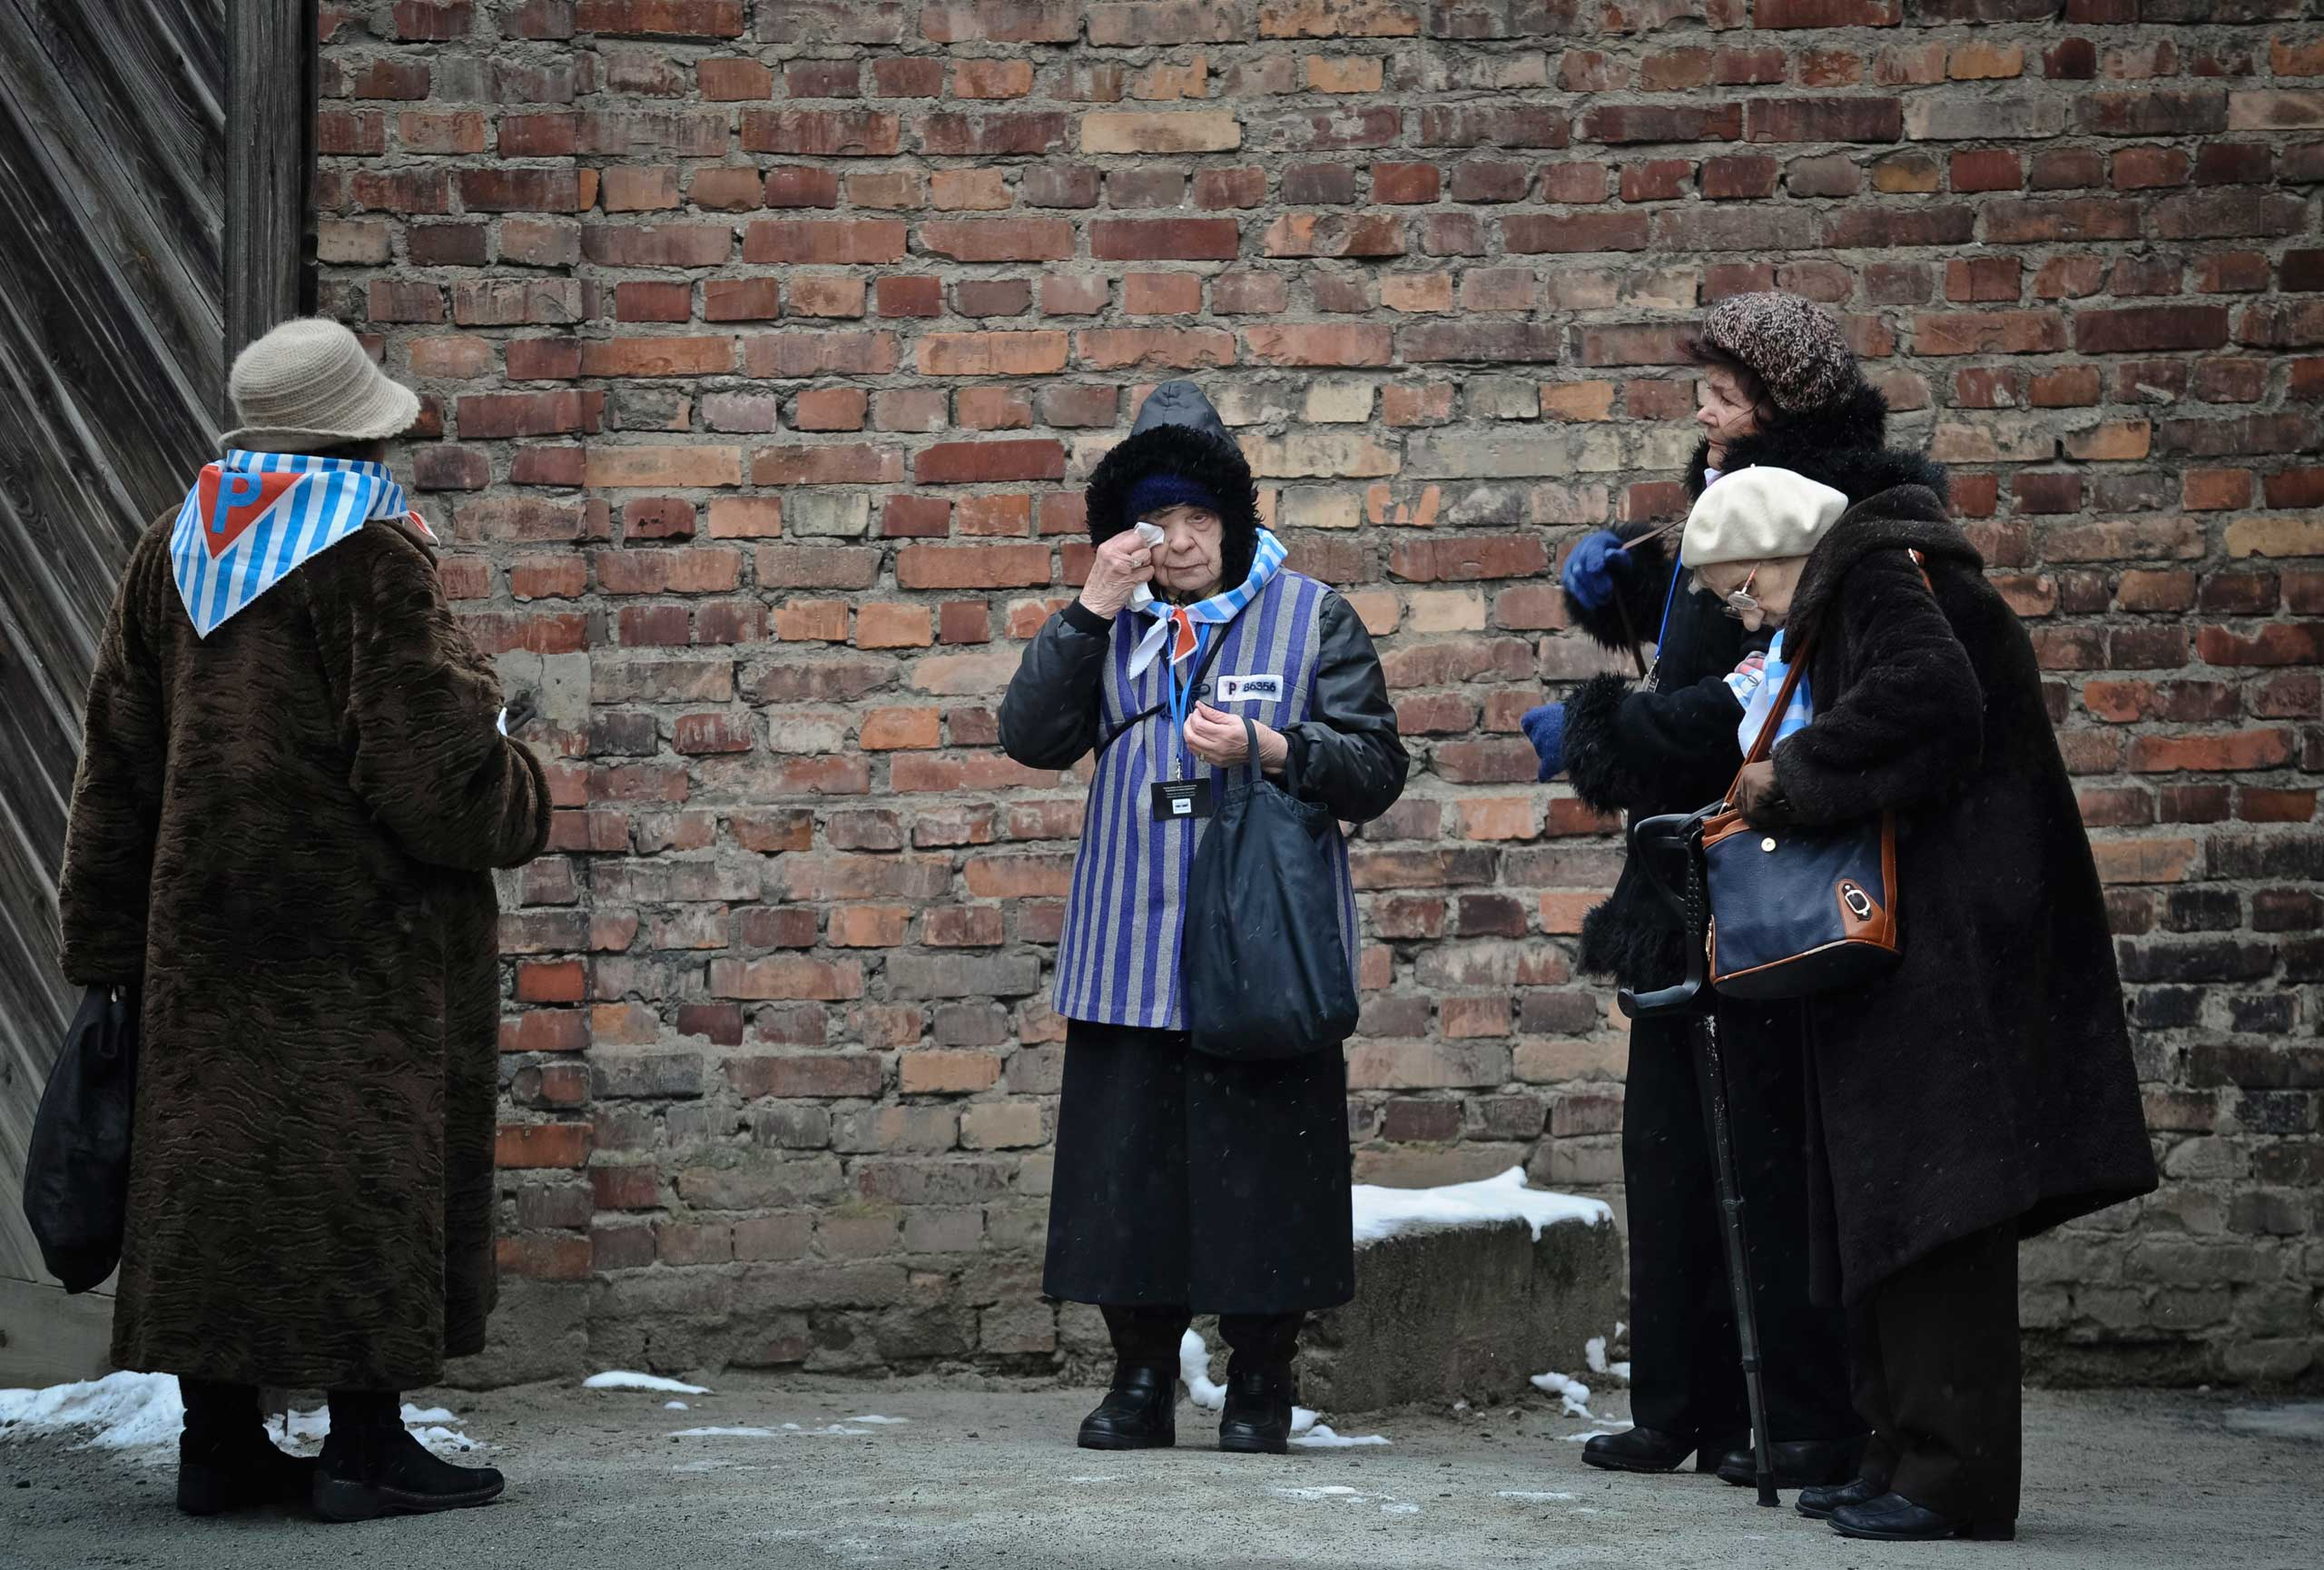 A Holocaust survivor wipes her eye while standing along with others outside a detention block of the Auschwitz Nazi death camp in Oswiecim,  Jan. 27, 2015.